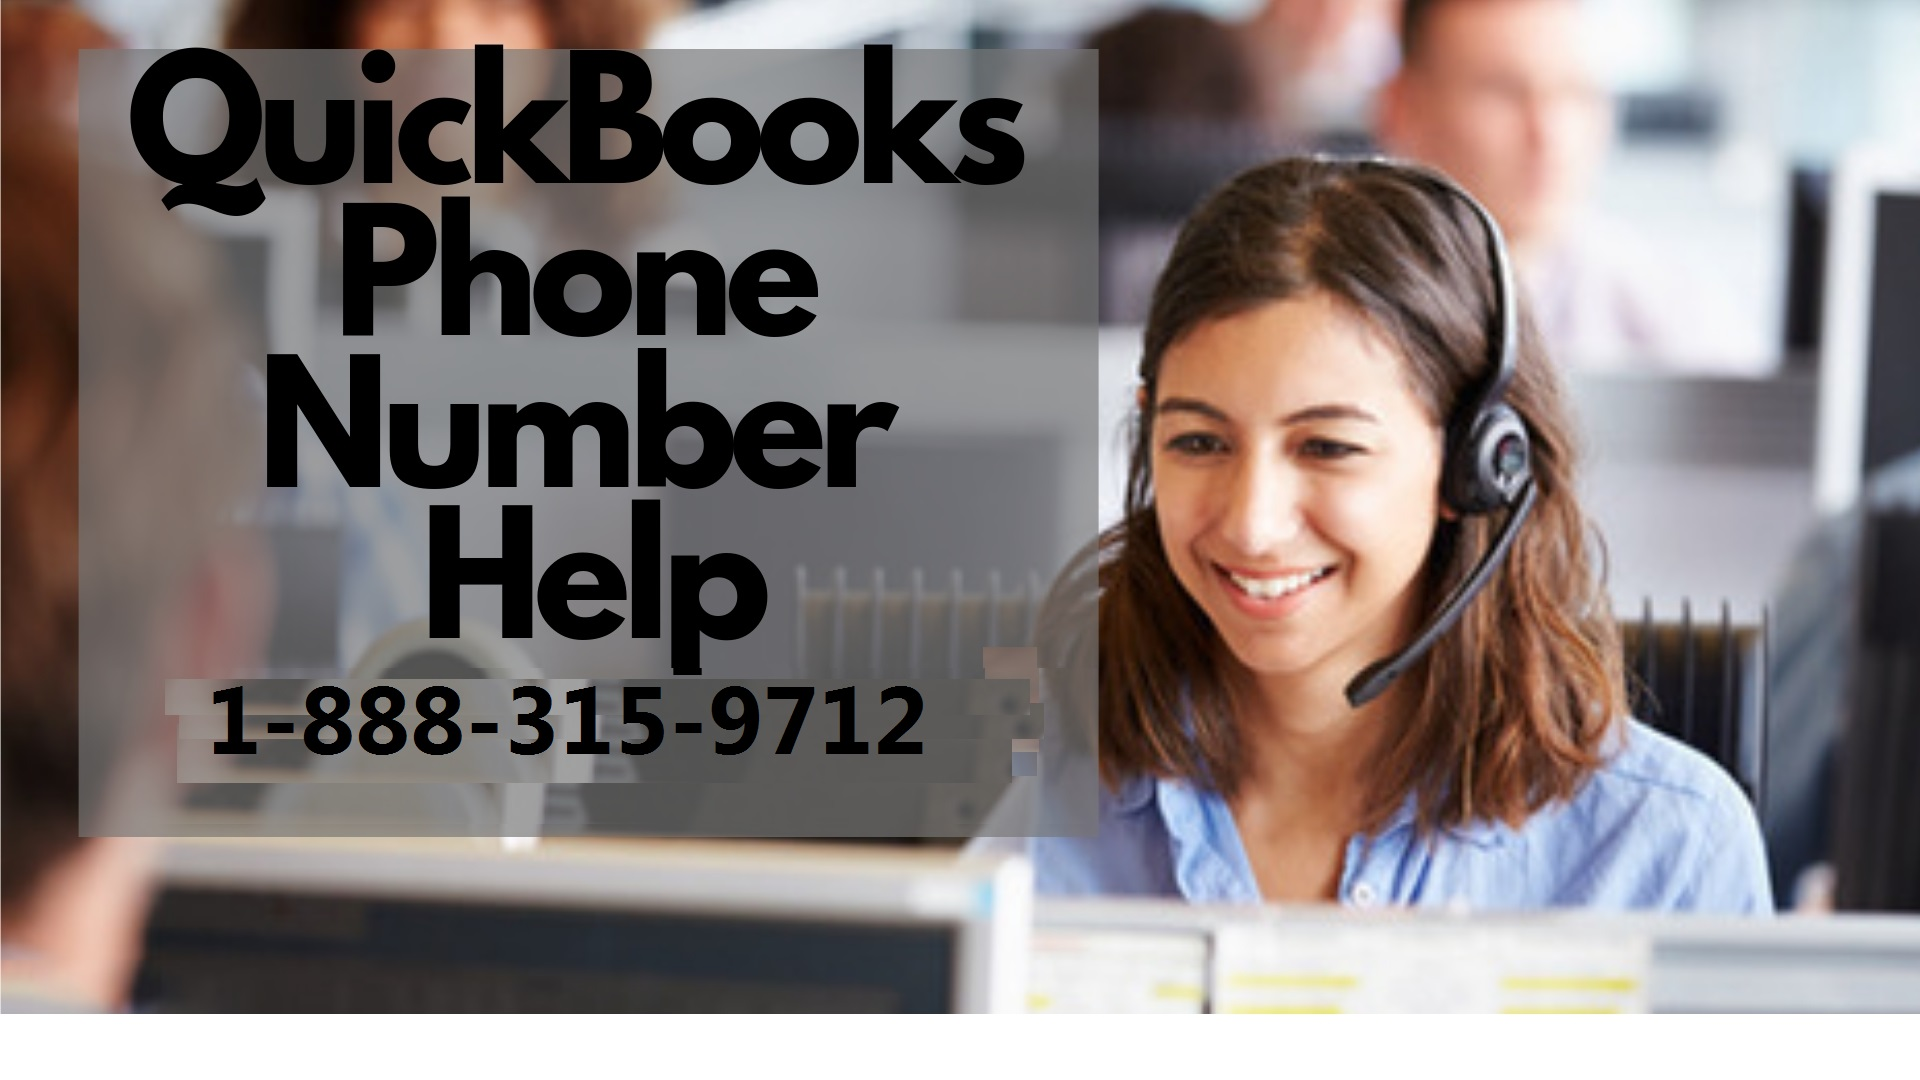 Quickbooks support phone number | quickbooks support number image 1